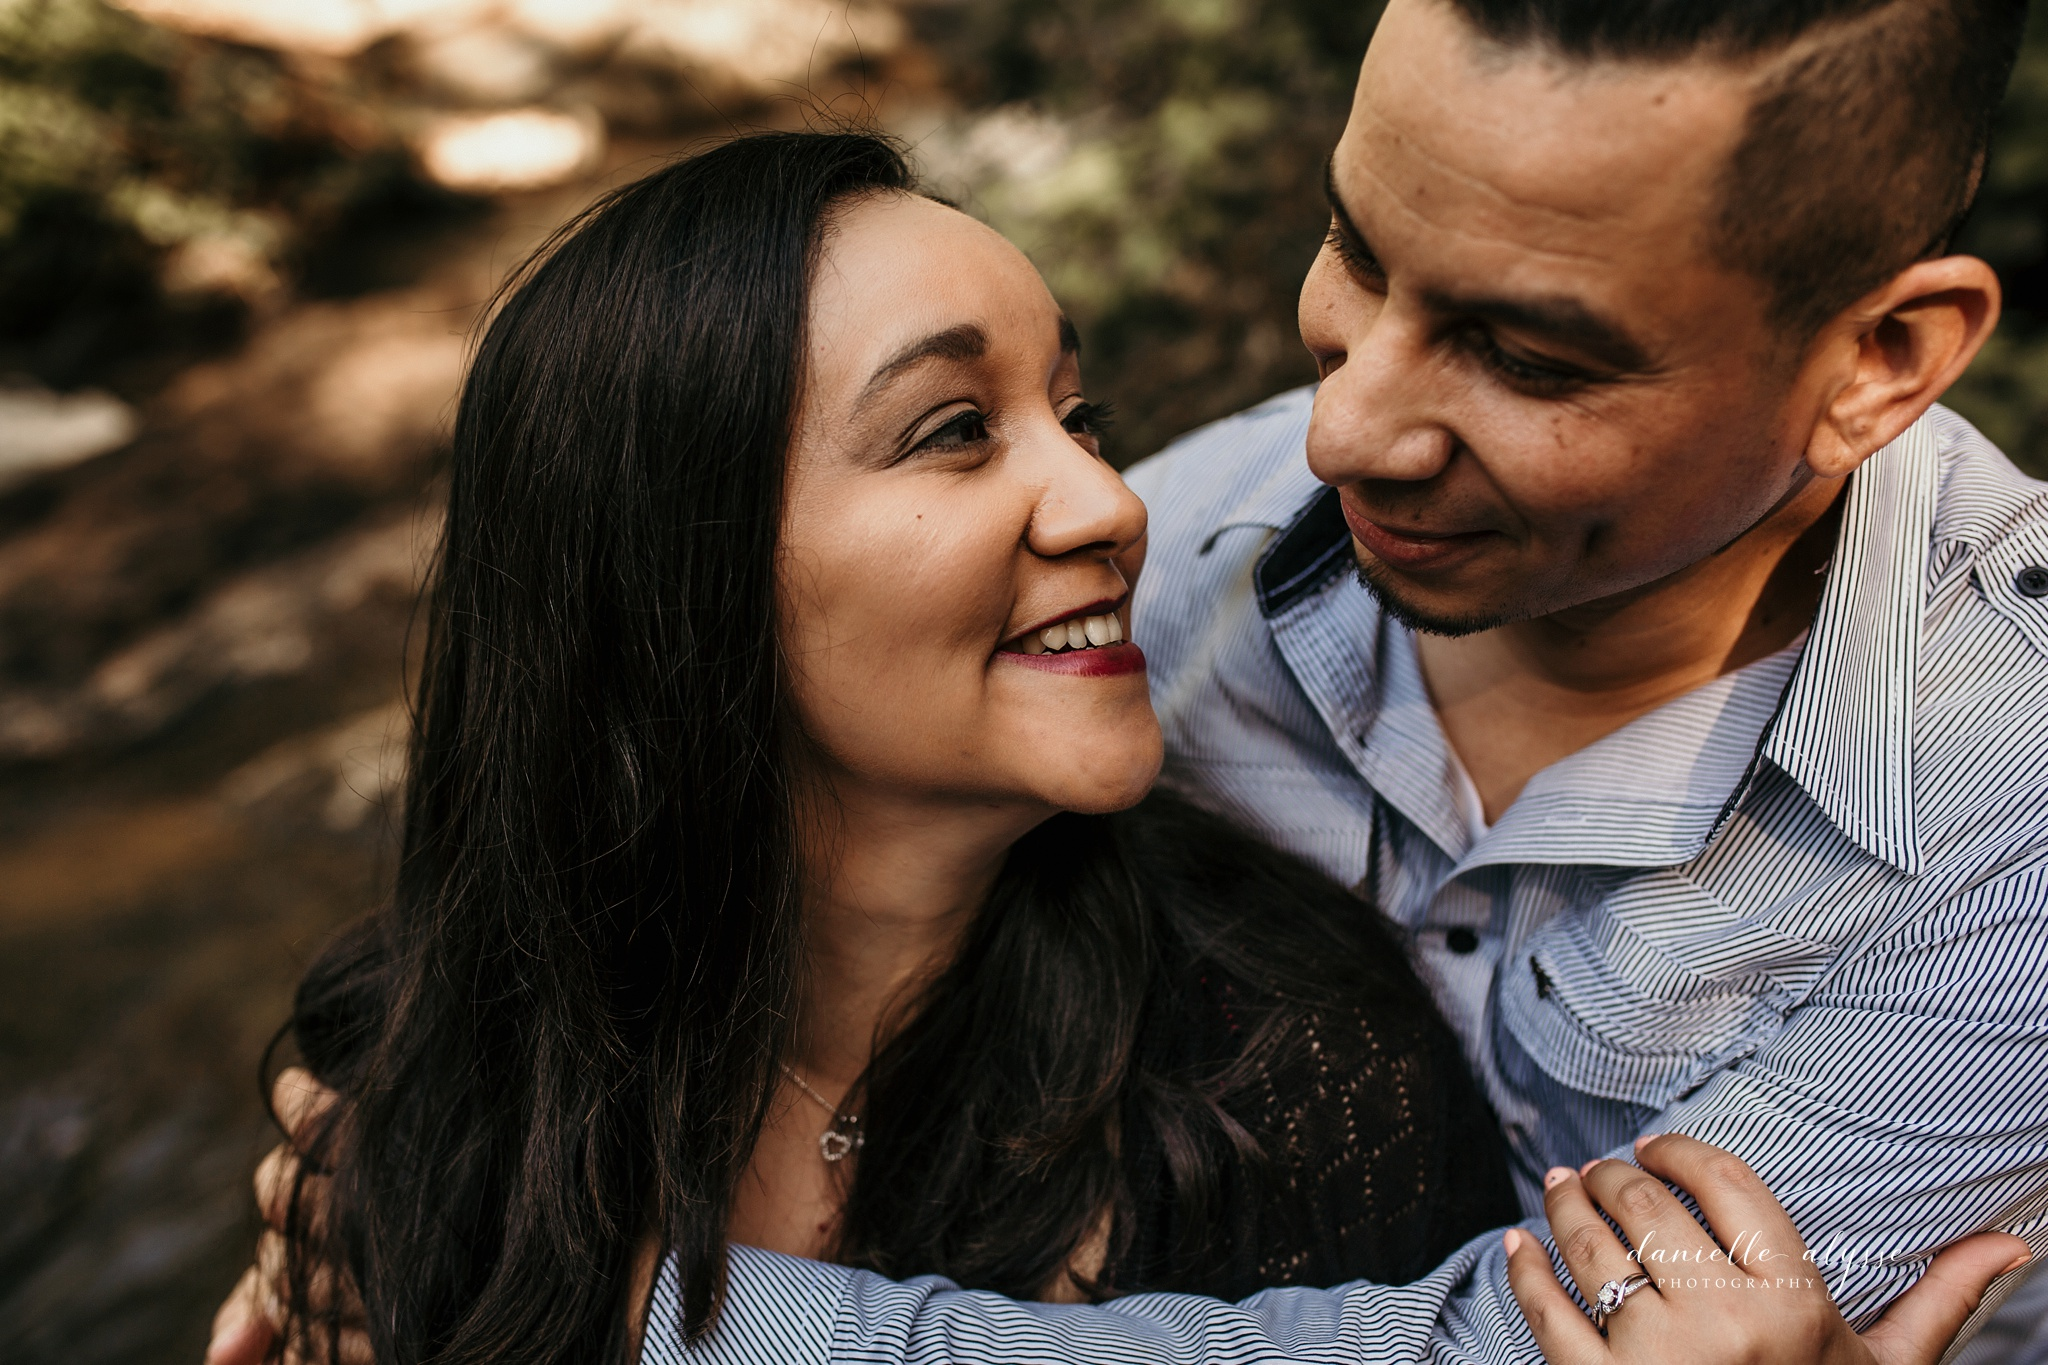 180425_engagement_monica_auburn_water_falls_auburn_danielle_alysse_photography_sacramento_photographer_blog_12_WEB.jpg